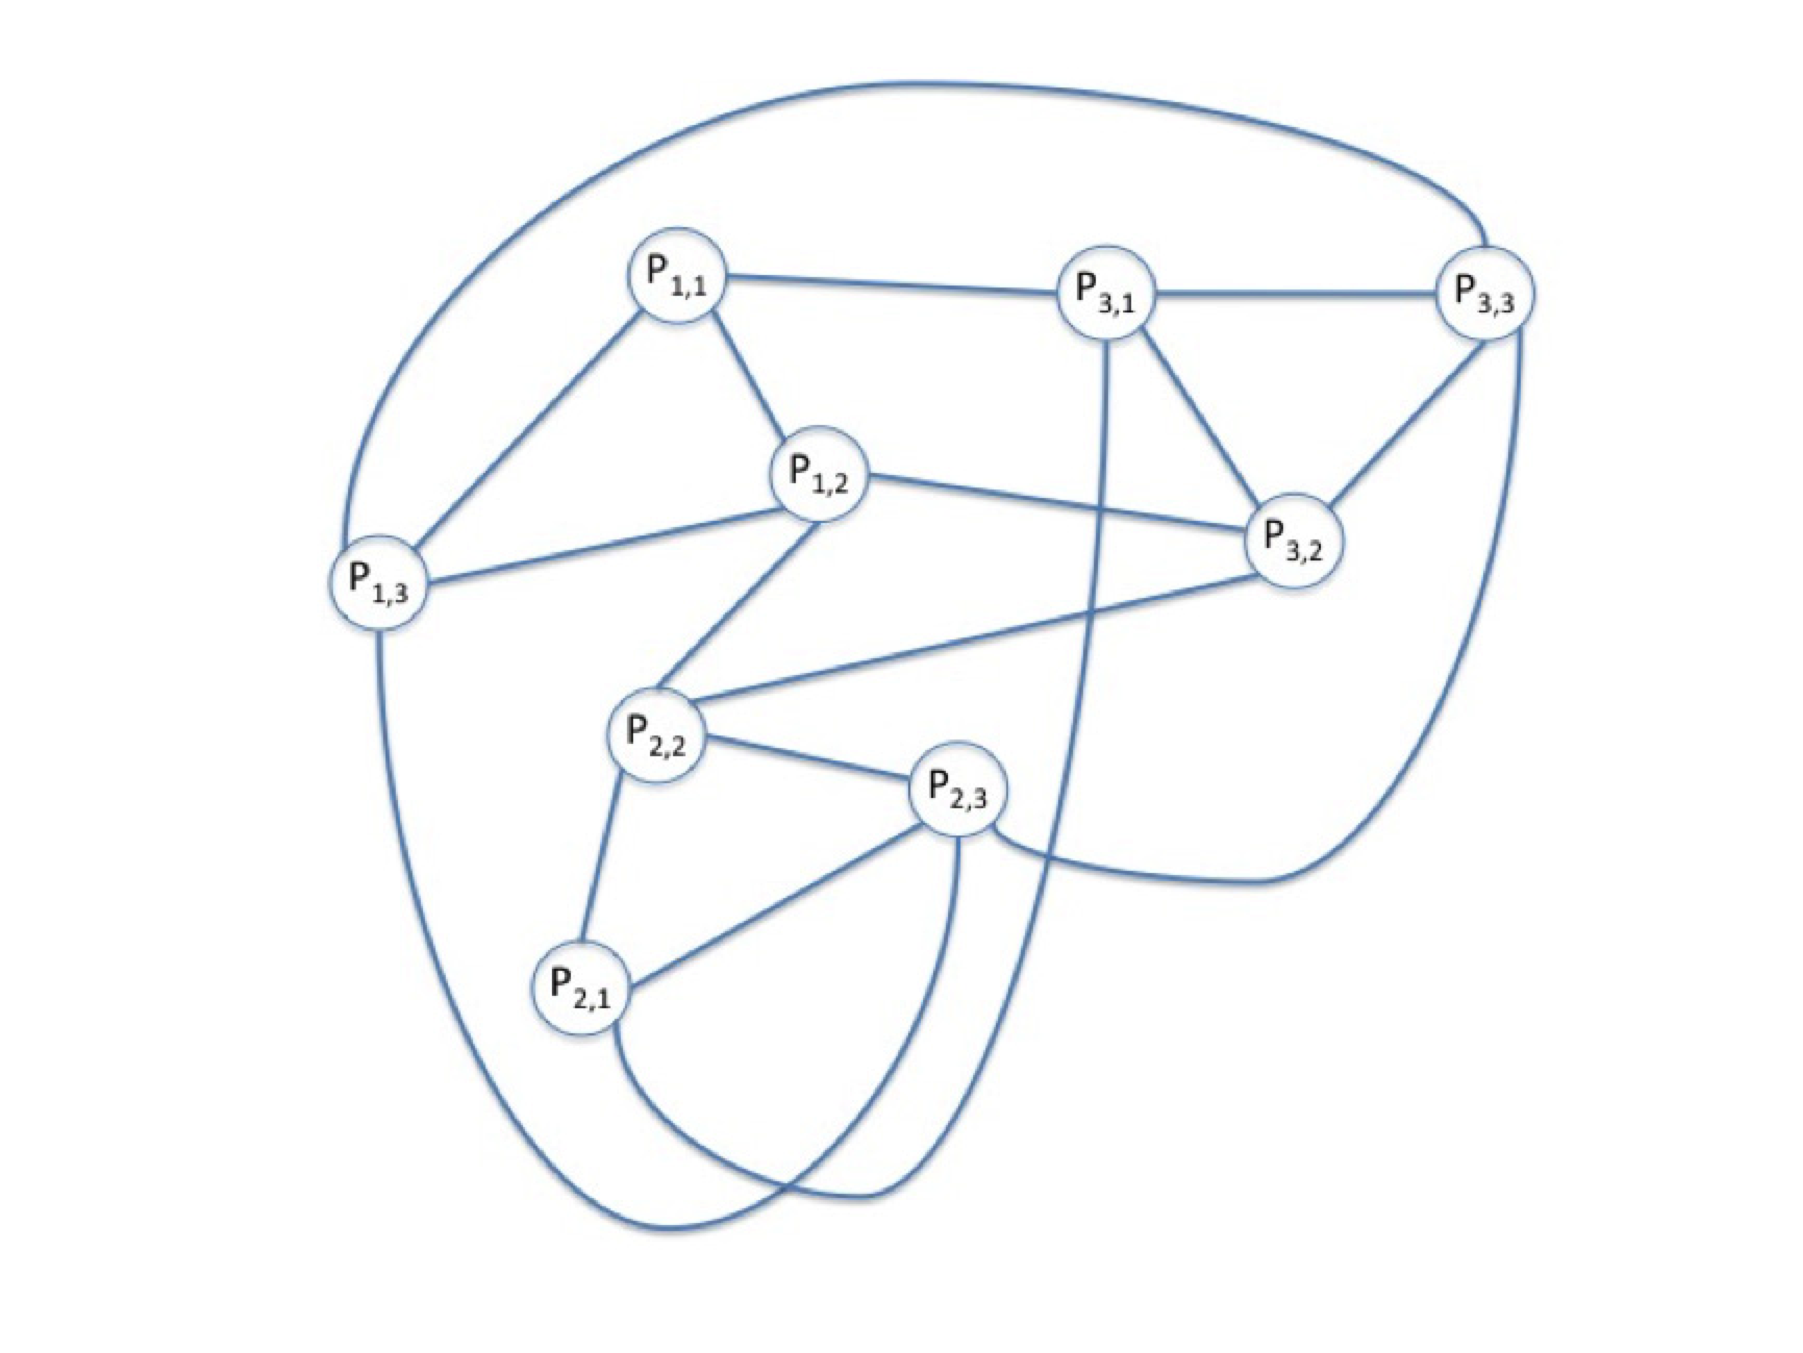 3 people each sharing 2 valid identifiers results in 9 interconnected synthetic identities